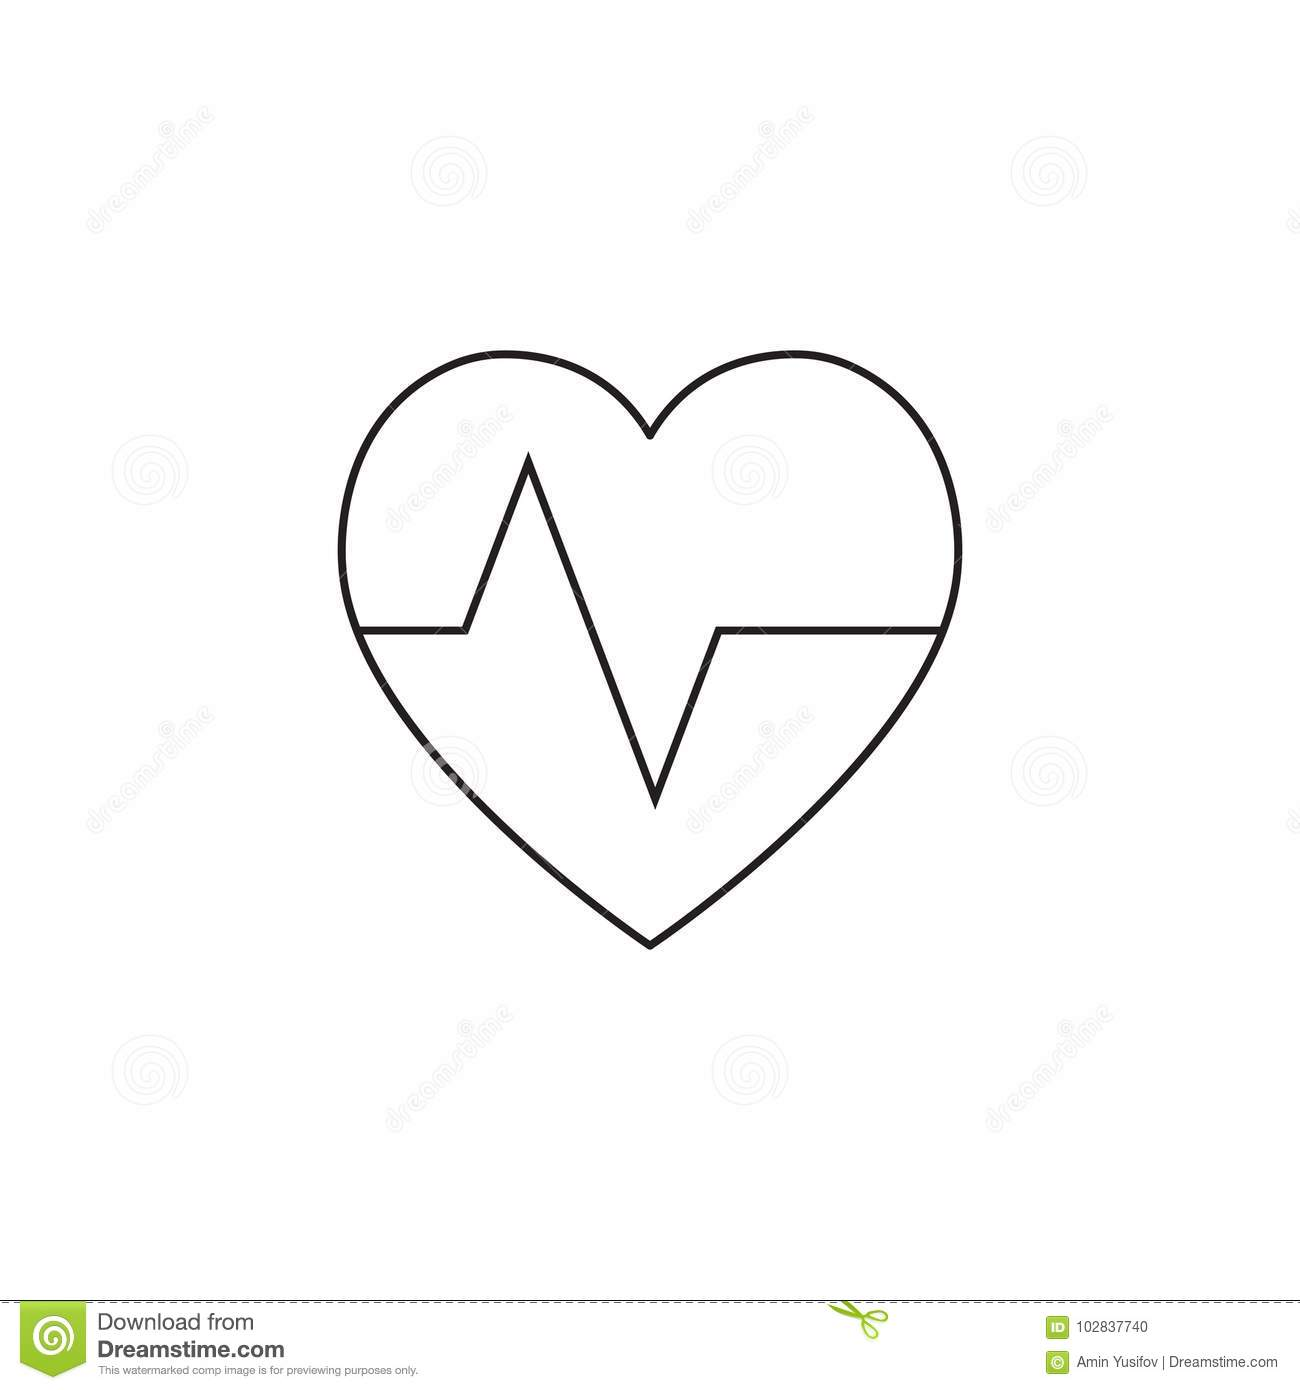 Heartbeat symbol heart beat pulse line icon outline vector log heartbeat symbol heart beat pulse line icon outline vector log buycottarizona Image collections